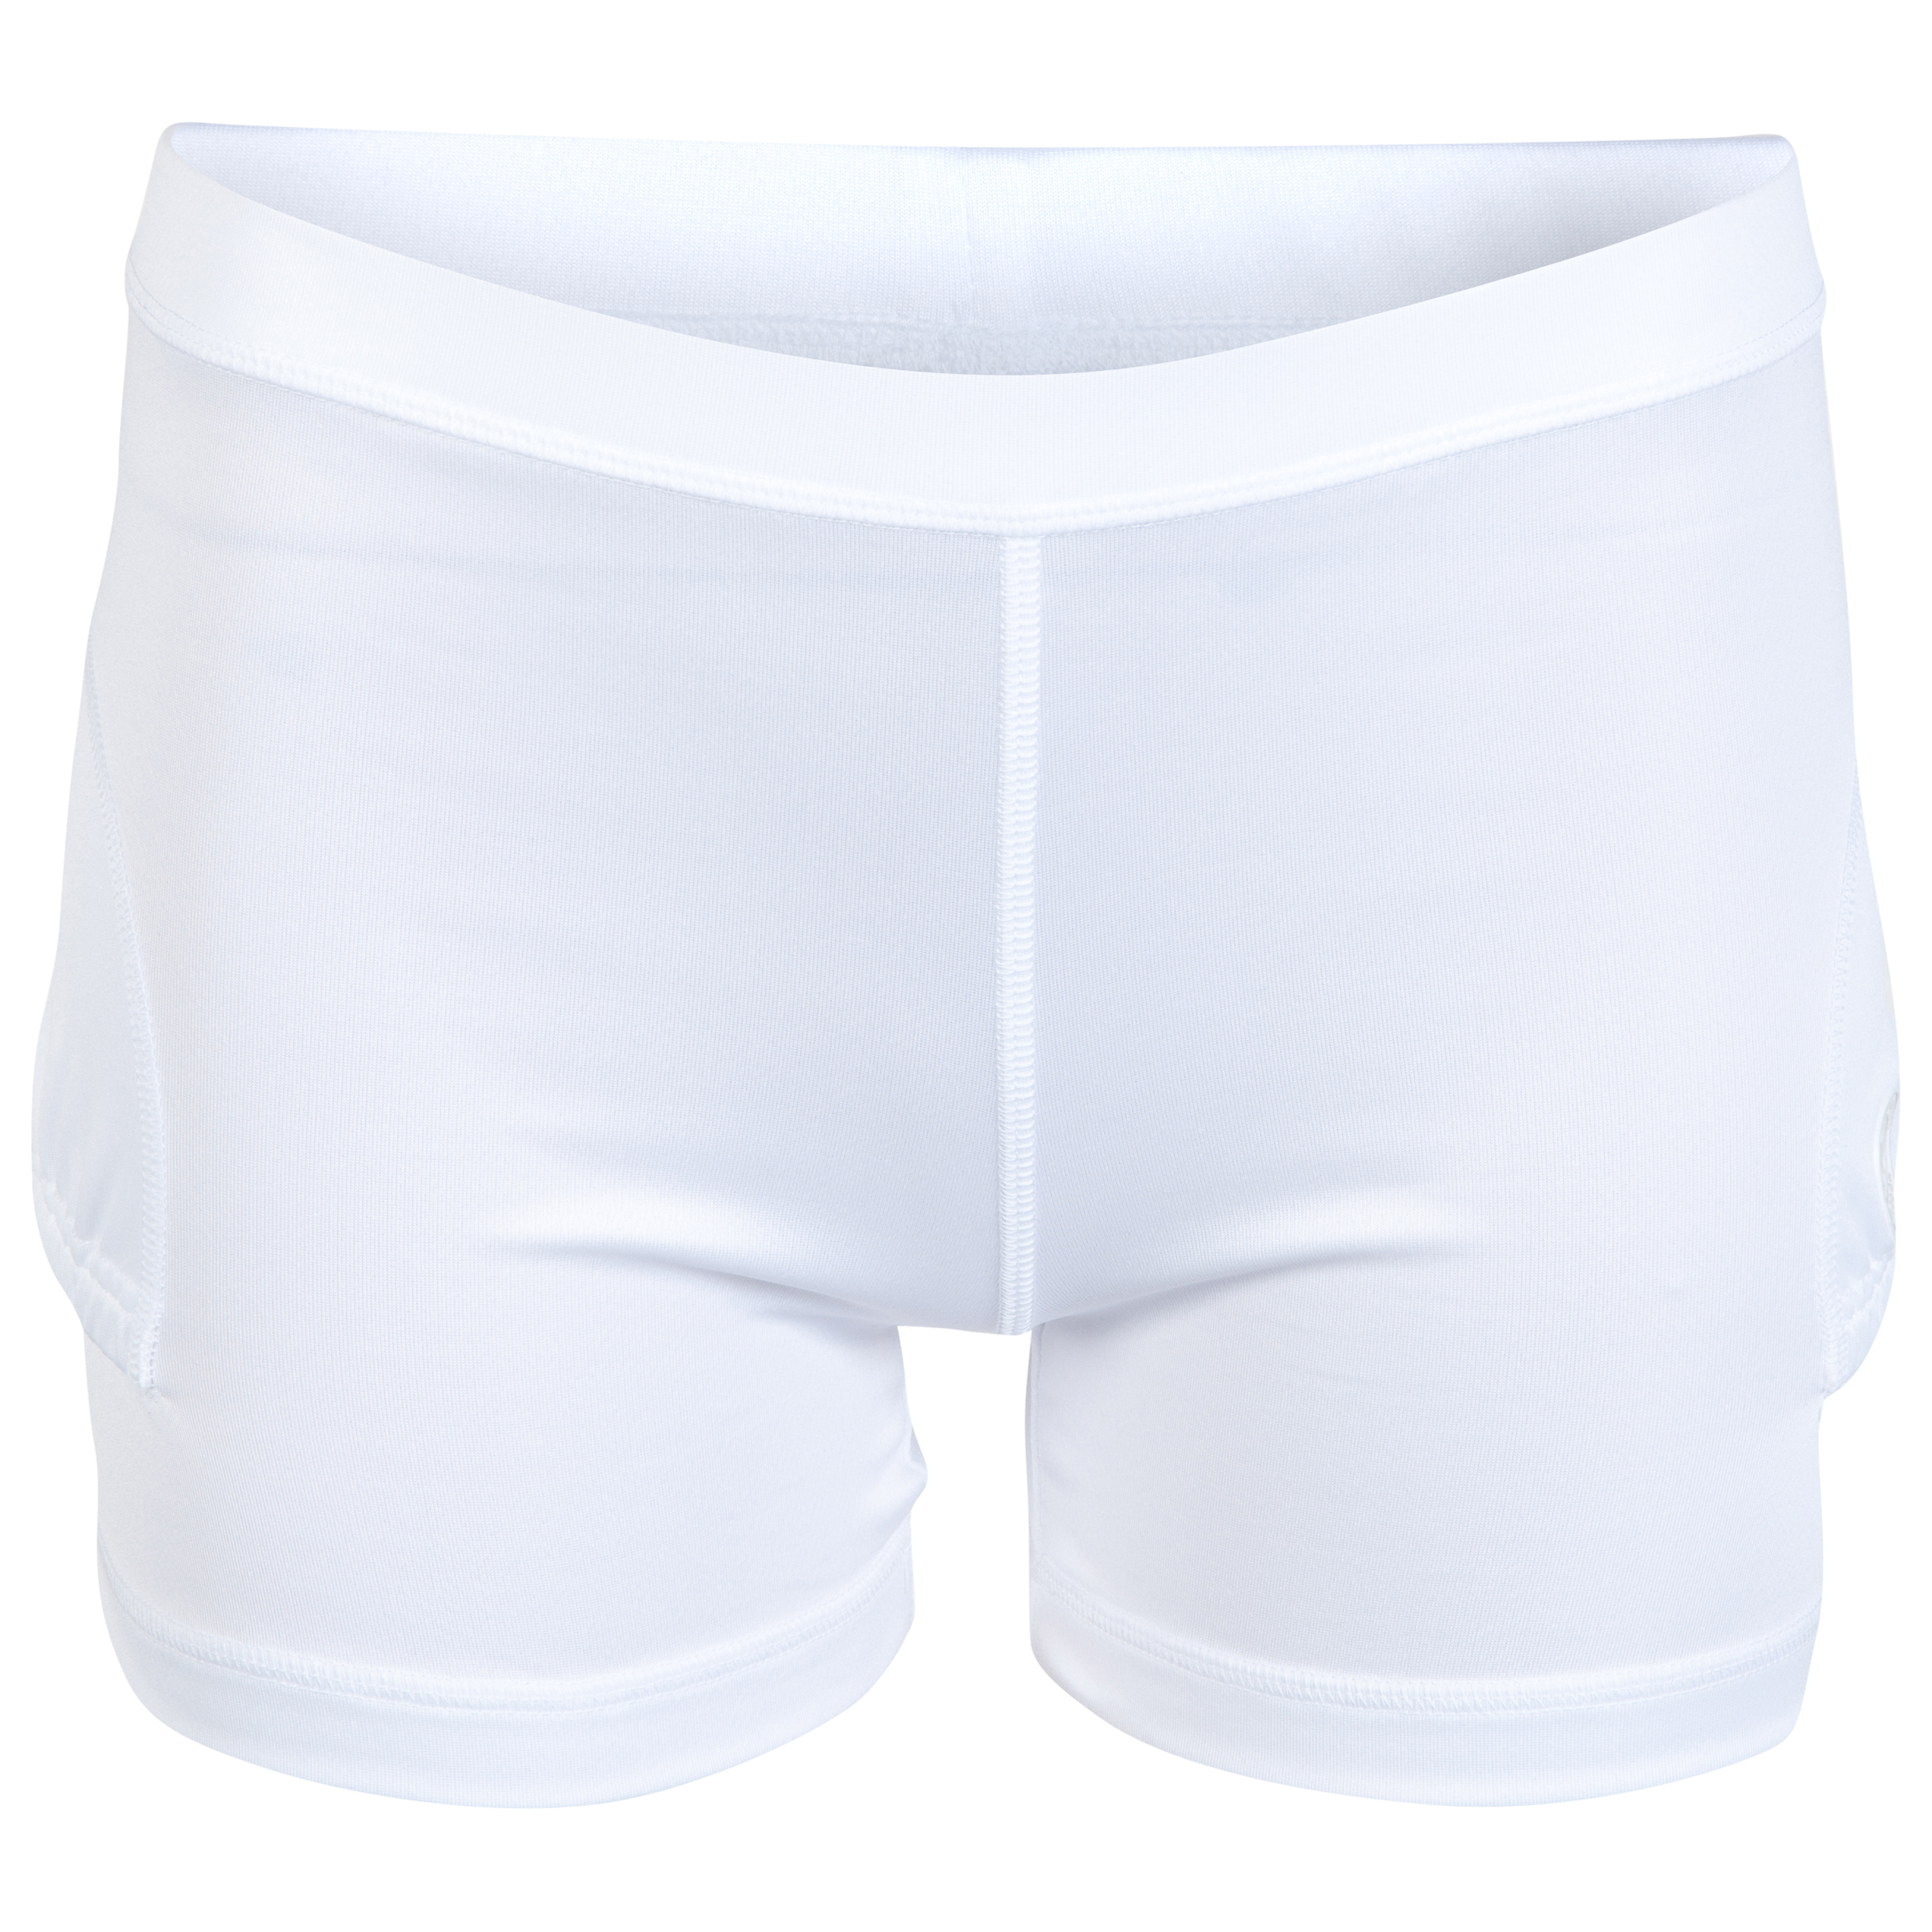 Wimbledon Player Undershort - Ladies White